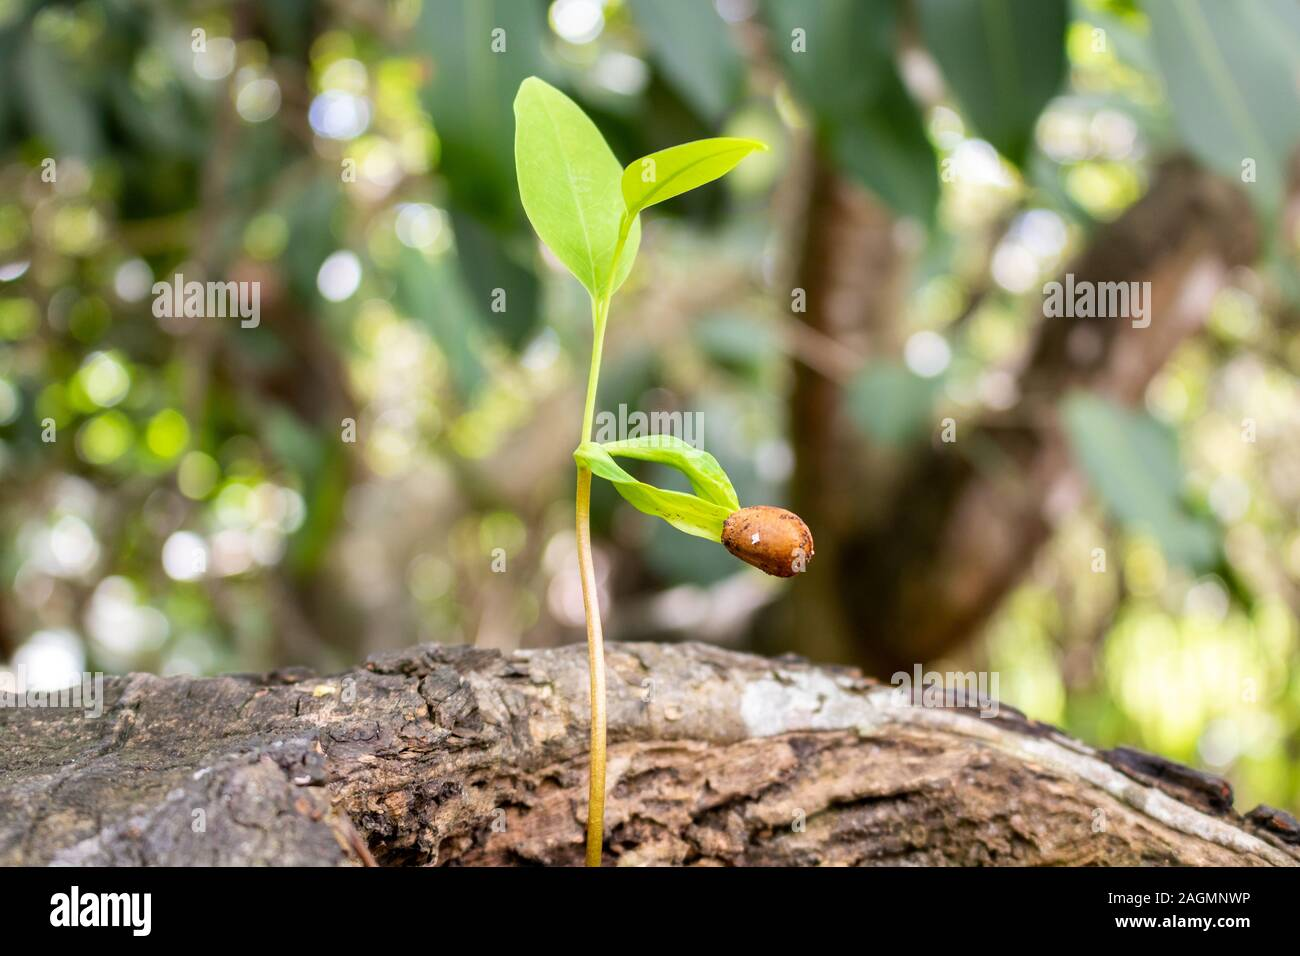 plant germinating on the trunk of a tree on a sunny day in Brazil Stock Photo